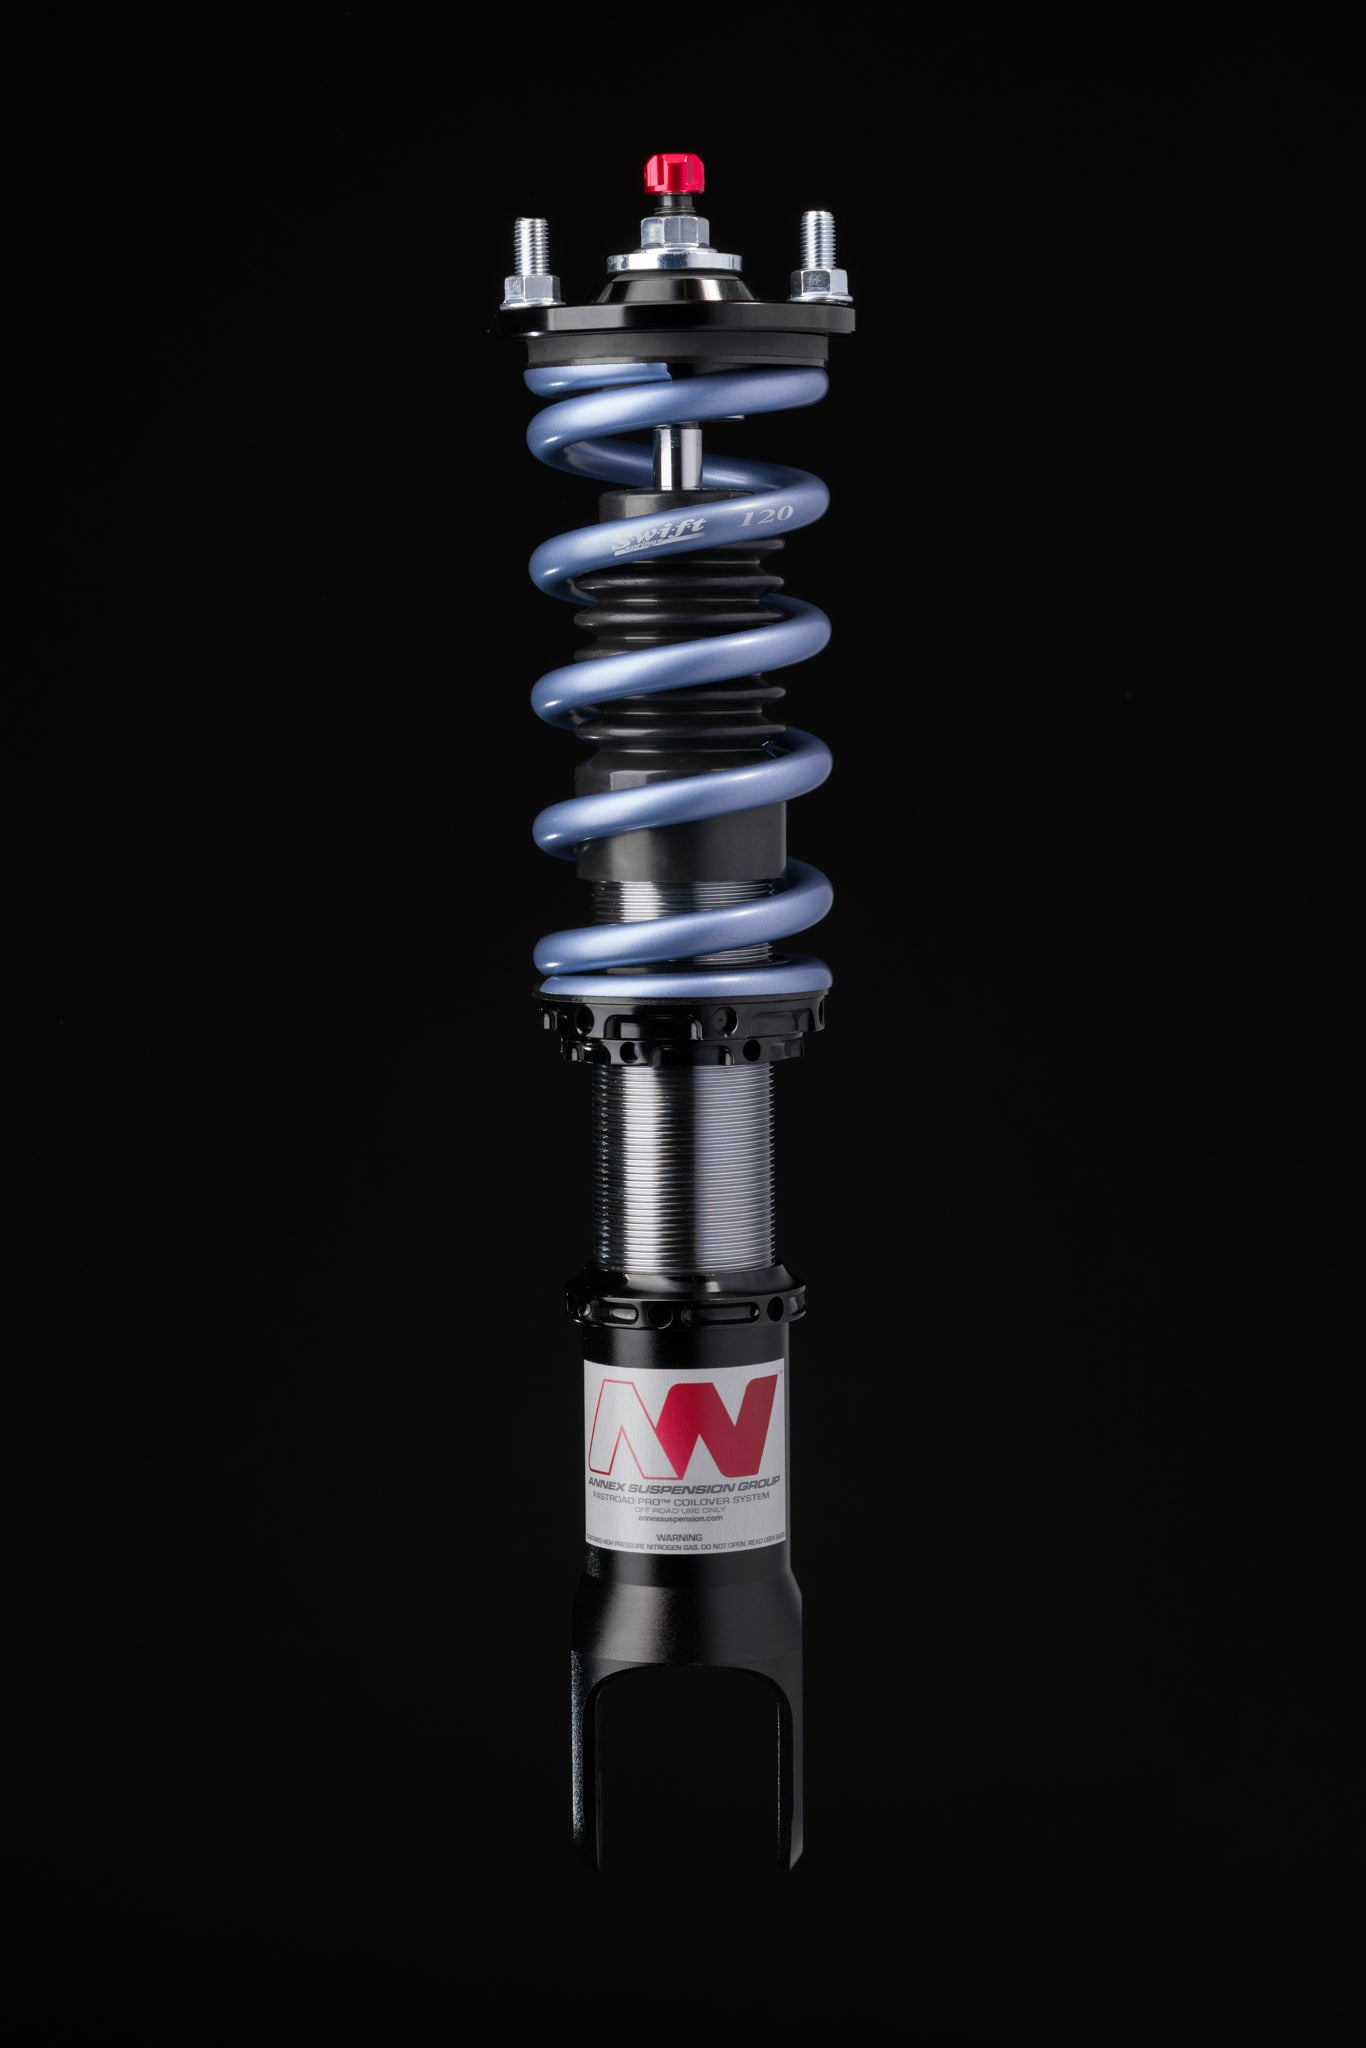 Mazda 1986-1991 RX7 (FC3S) Coilovers Annex Suspension Group 1986 1987 1988 1989 1990 1991